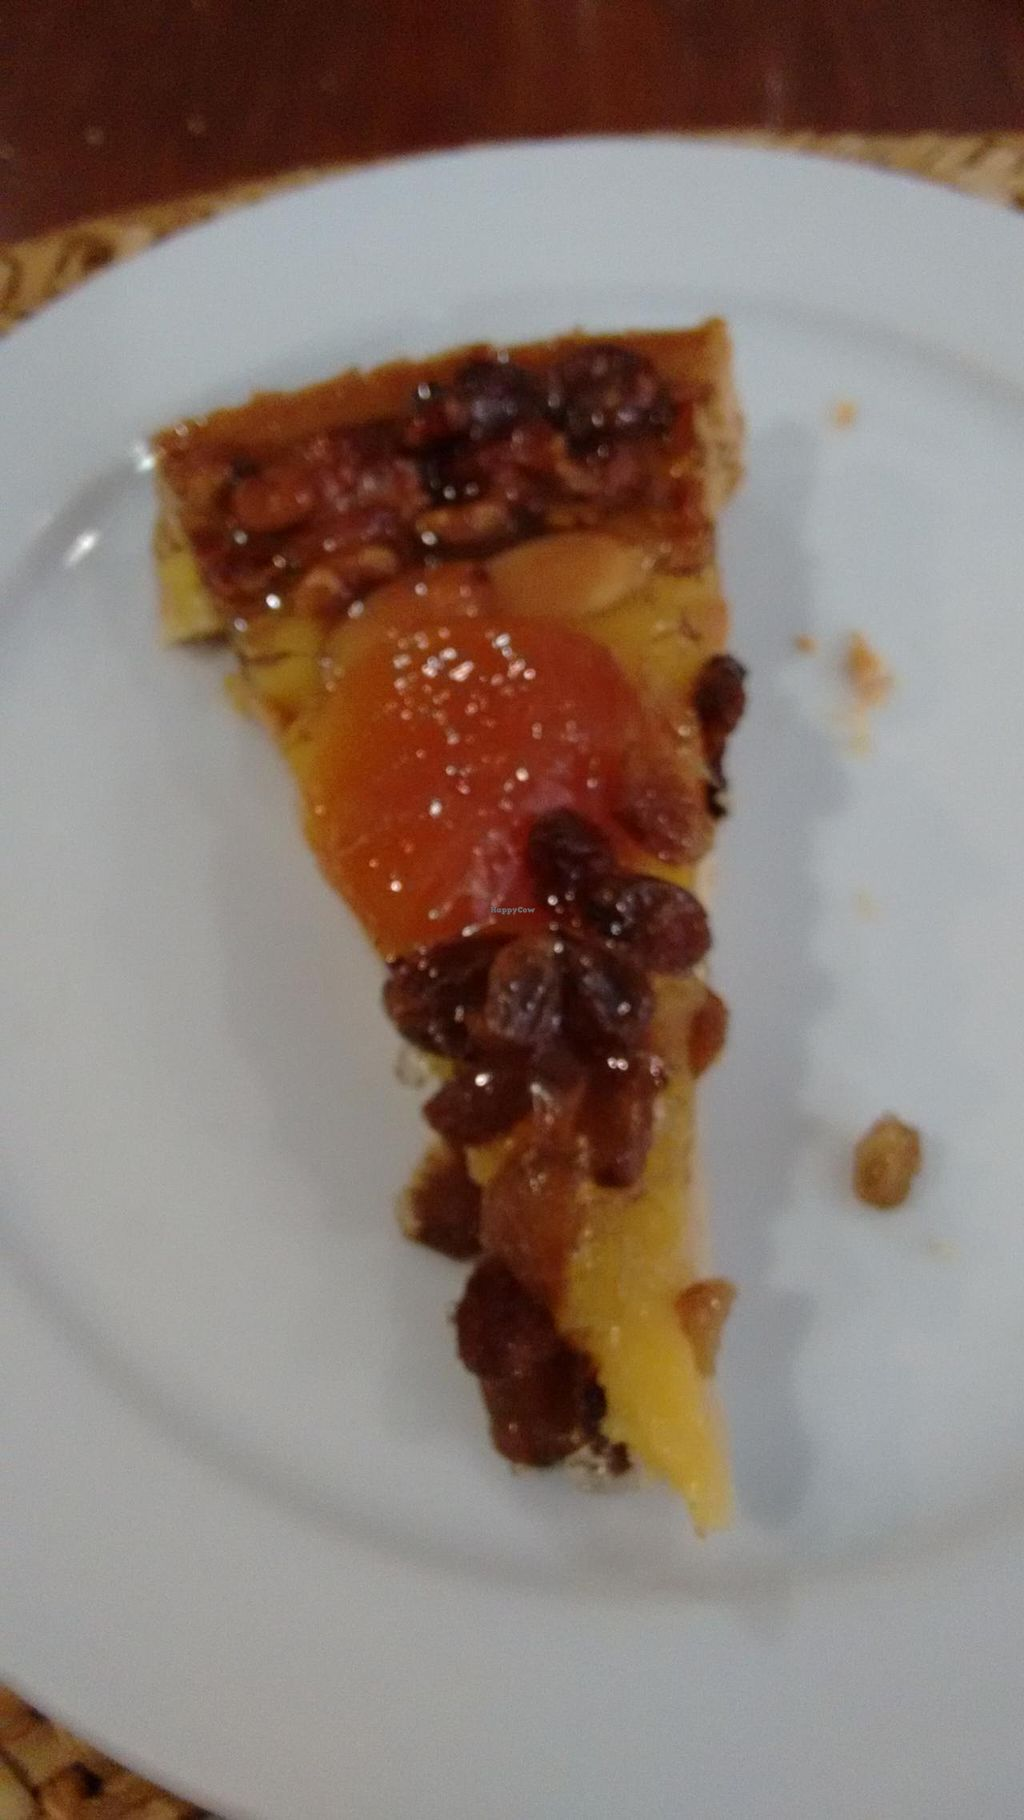 """Photo of Es Ginebro  by <a href=""""/members/profile/craigmc"""">craigmc</a> <br/>Vegan fruit & nut tart <br/> May 31, 2015  - <a href='/contact/abuse/image/24440/104285'>Report</a>"""